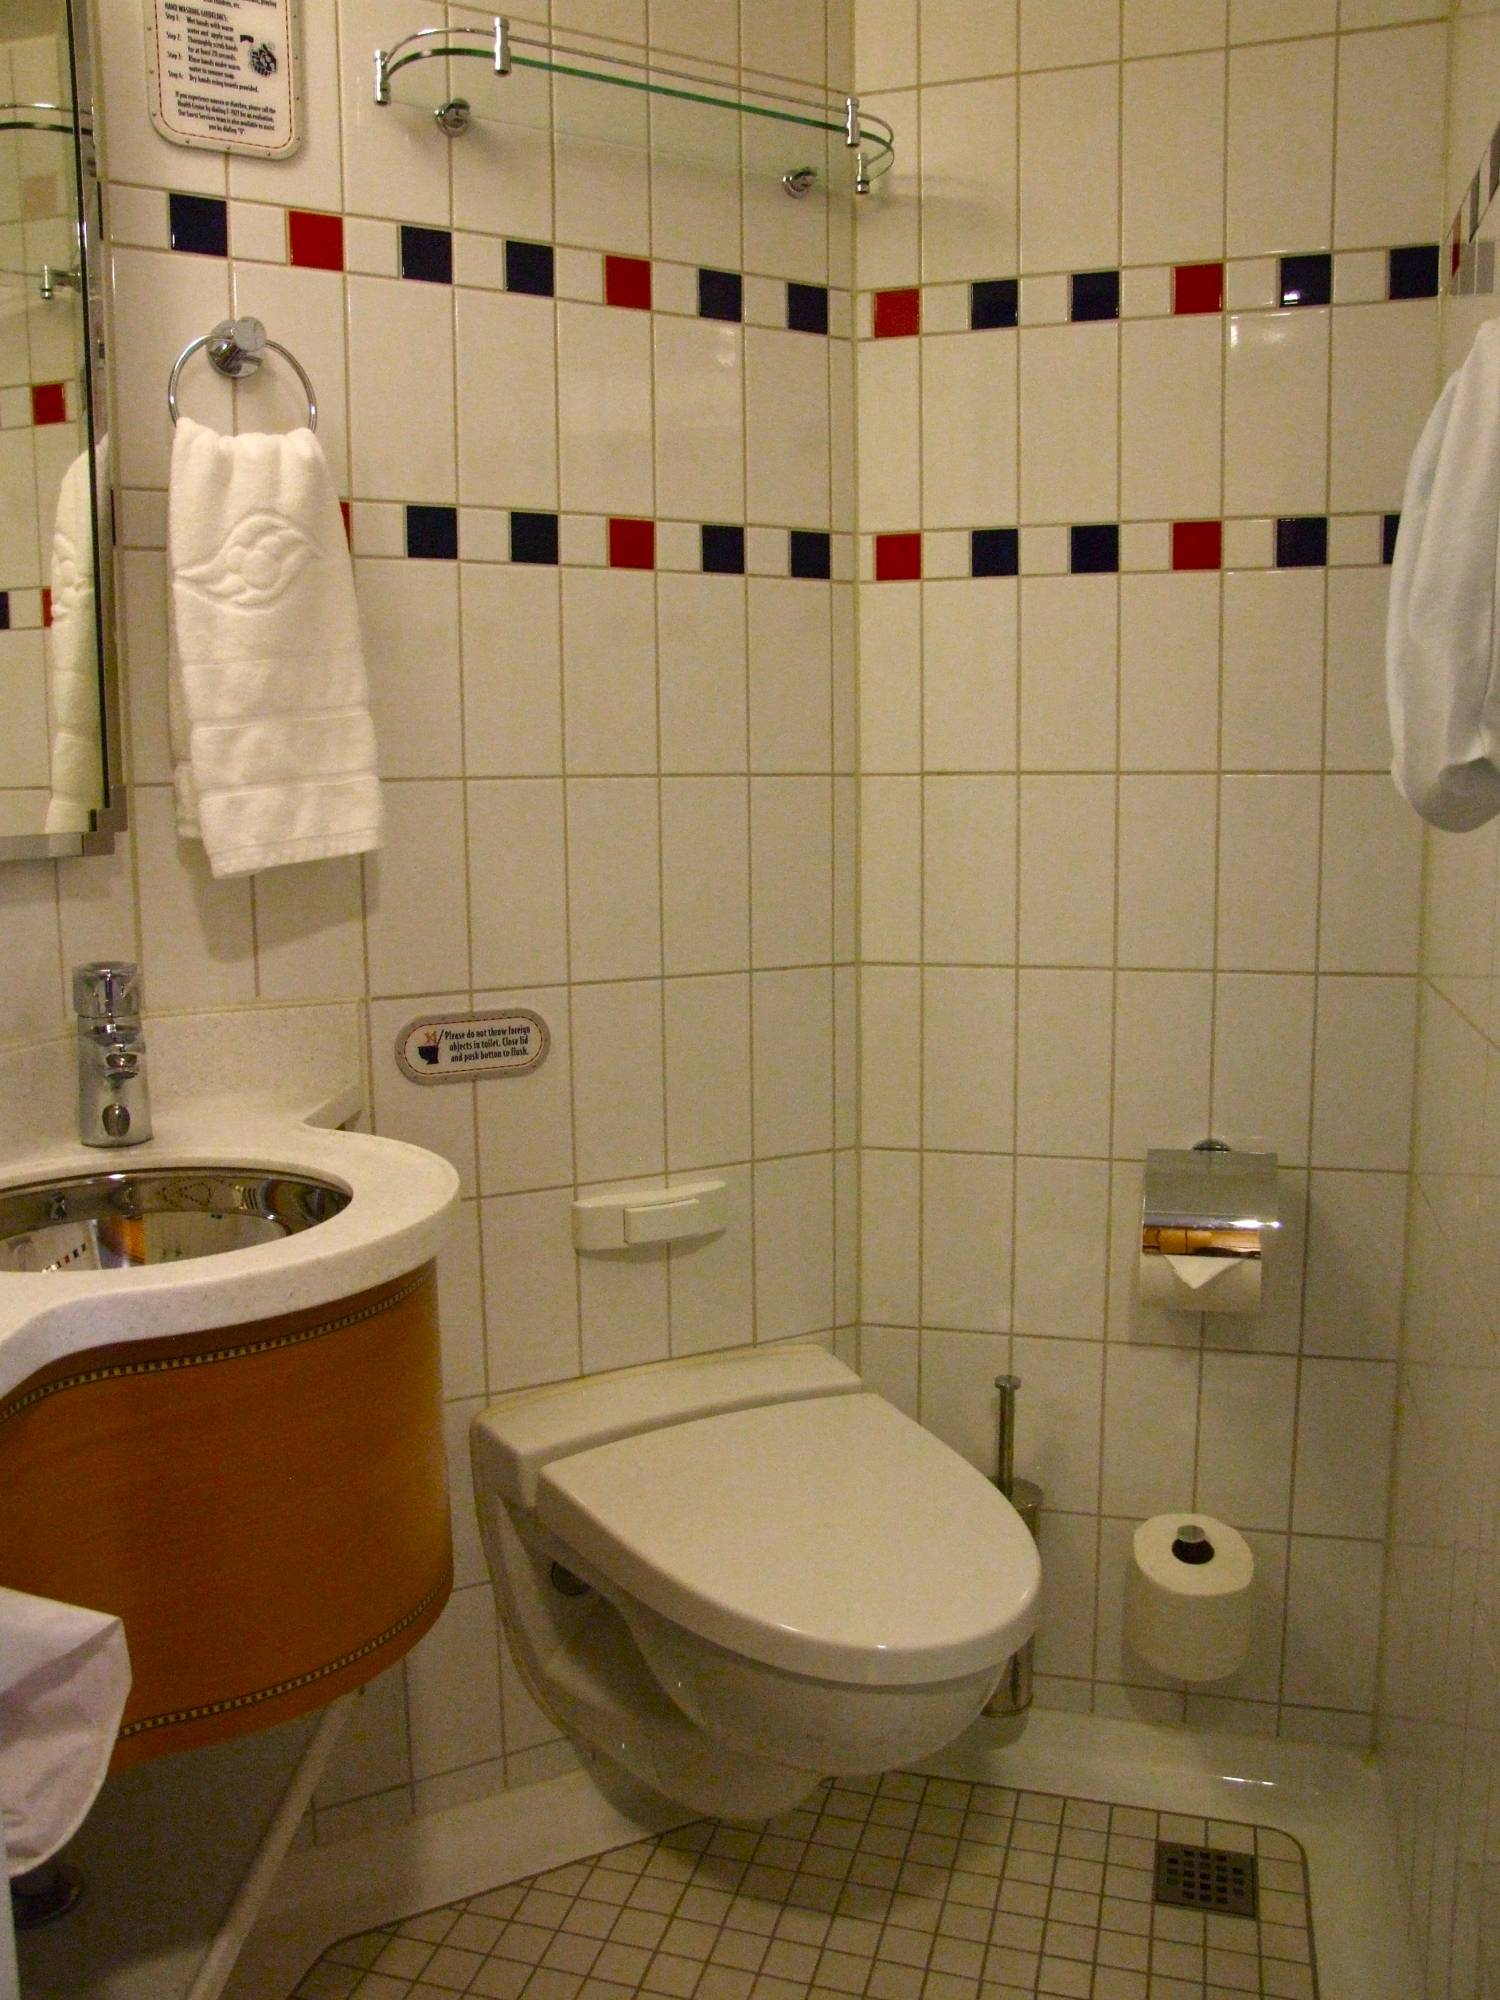 Disney Dream - Split Bathroom in a Stateroom (#7022)